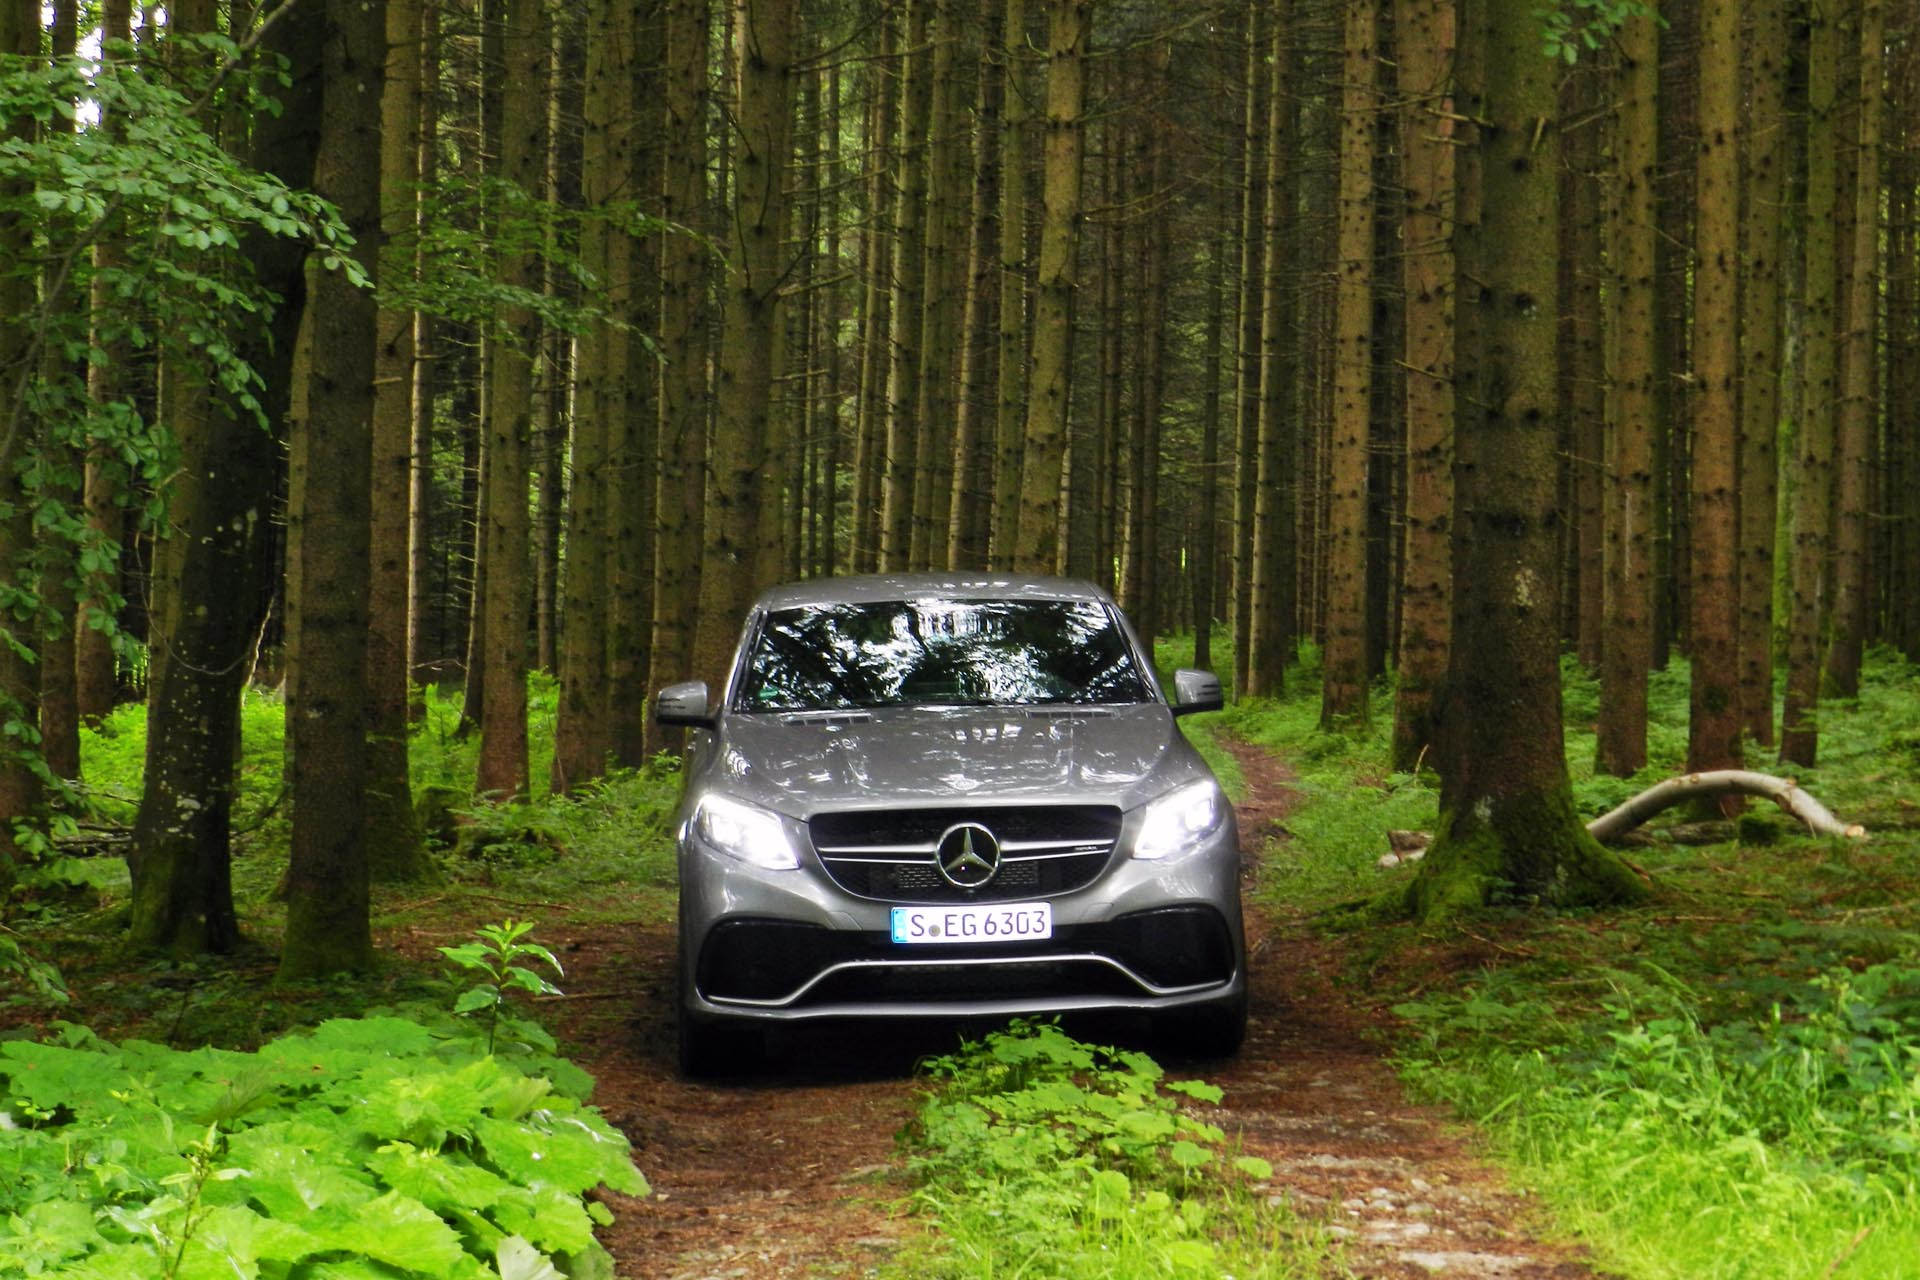 http://www.autos.ca/wp-content/uploads/2015/06/2016-Mercedes-Benz-GLE-63S-AMG-Coupe-JB-13.jpg